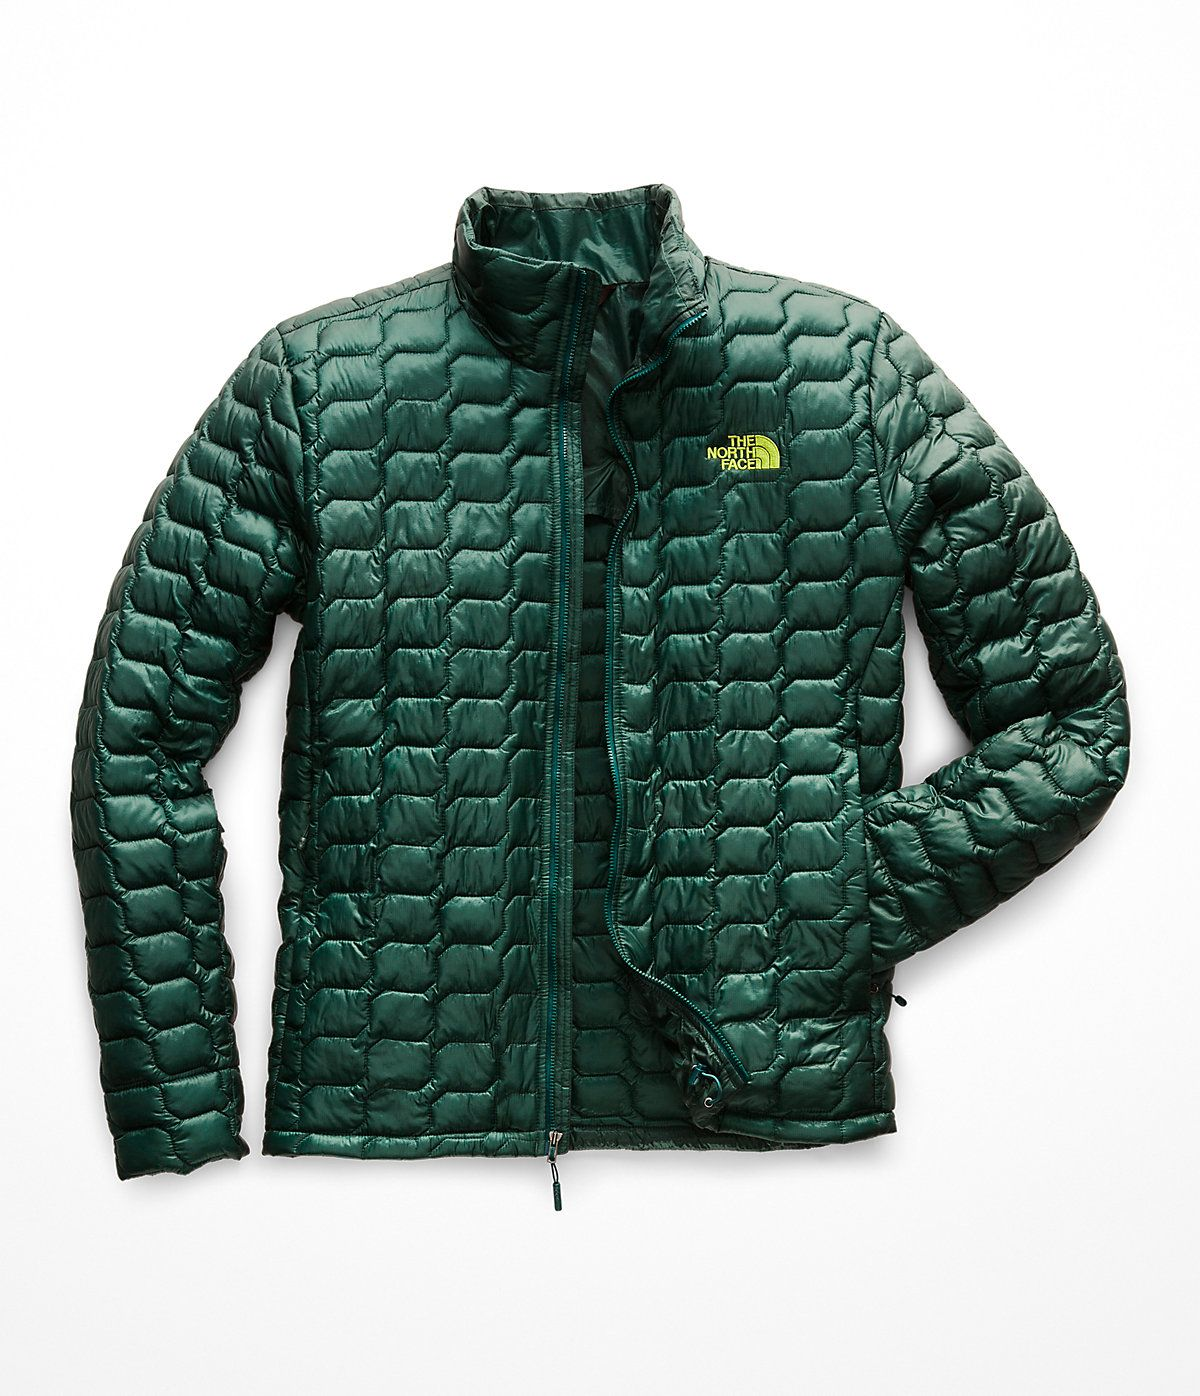 Men S Thermoball Eco Jacket The North Face North Face Mens Hiking Outfit Insulated Jackets [ 1396 x 1200 Pixel ]